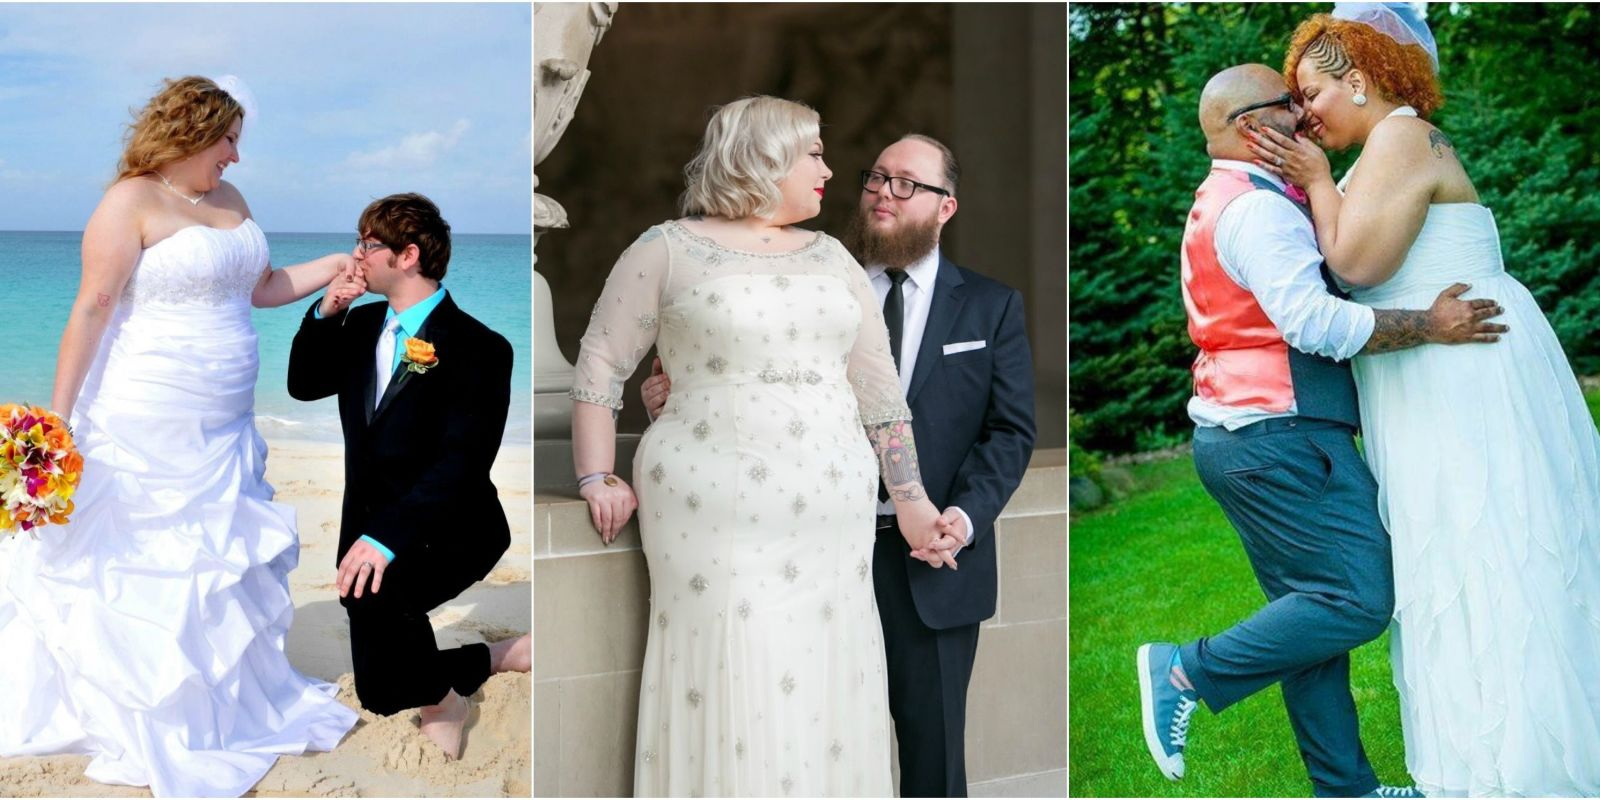 Wedding Gown Designs For Chubby: Blogger Makes Gallery Of Plus-Size Brides In Wedding